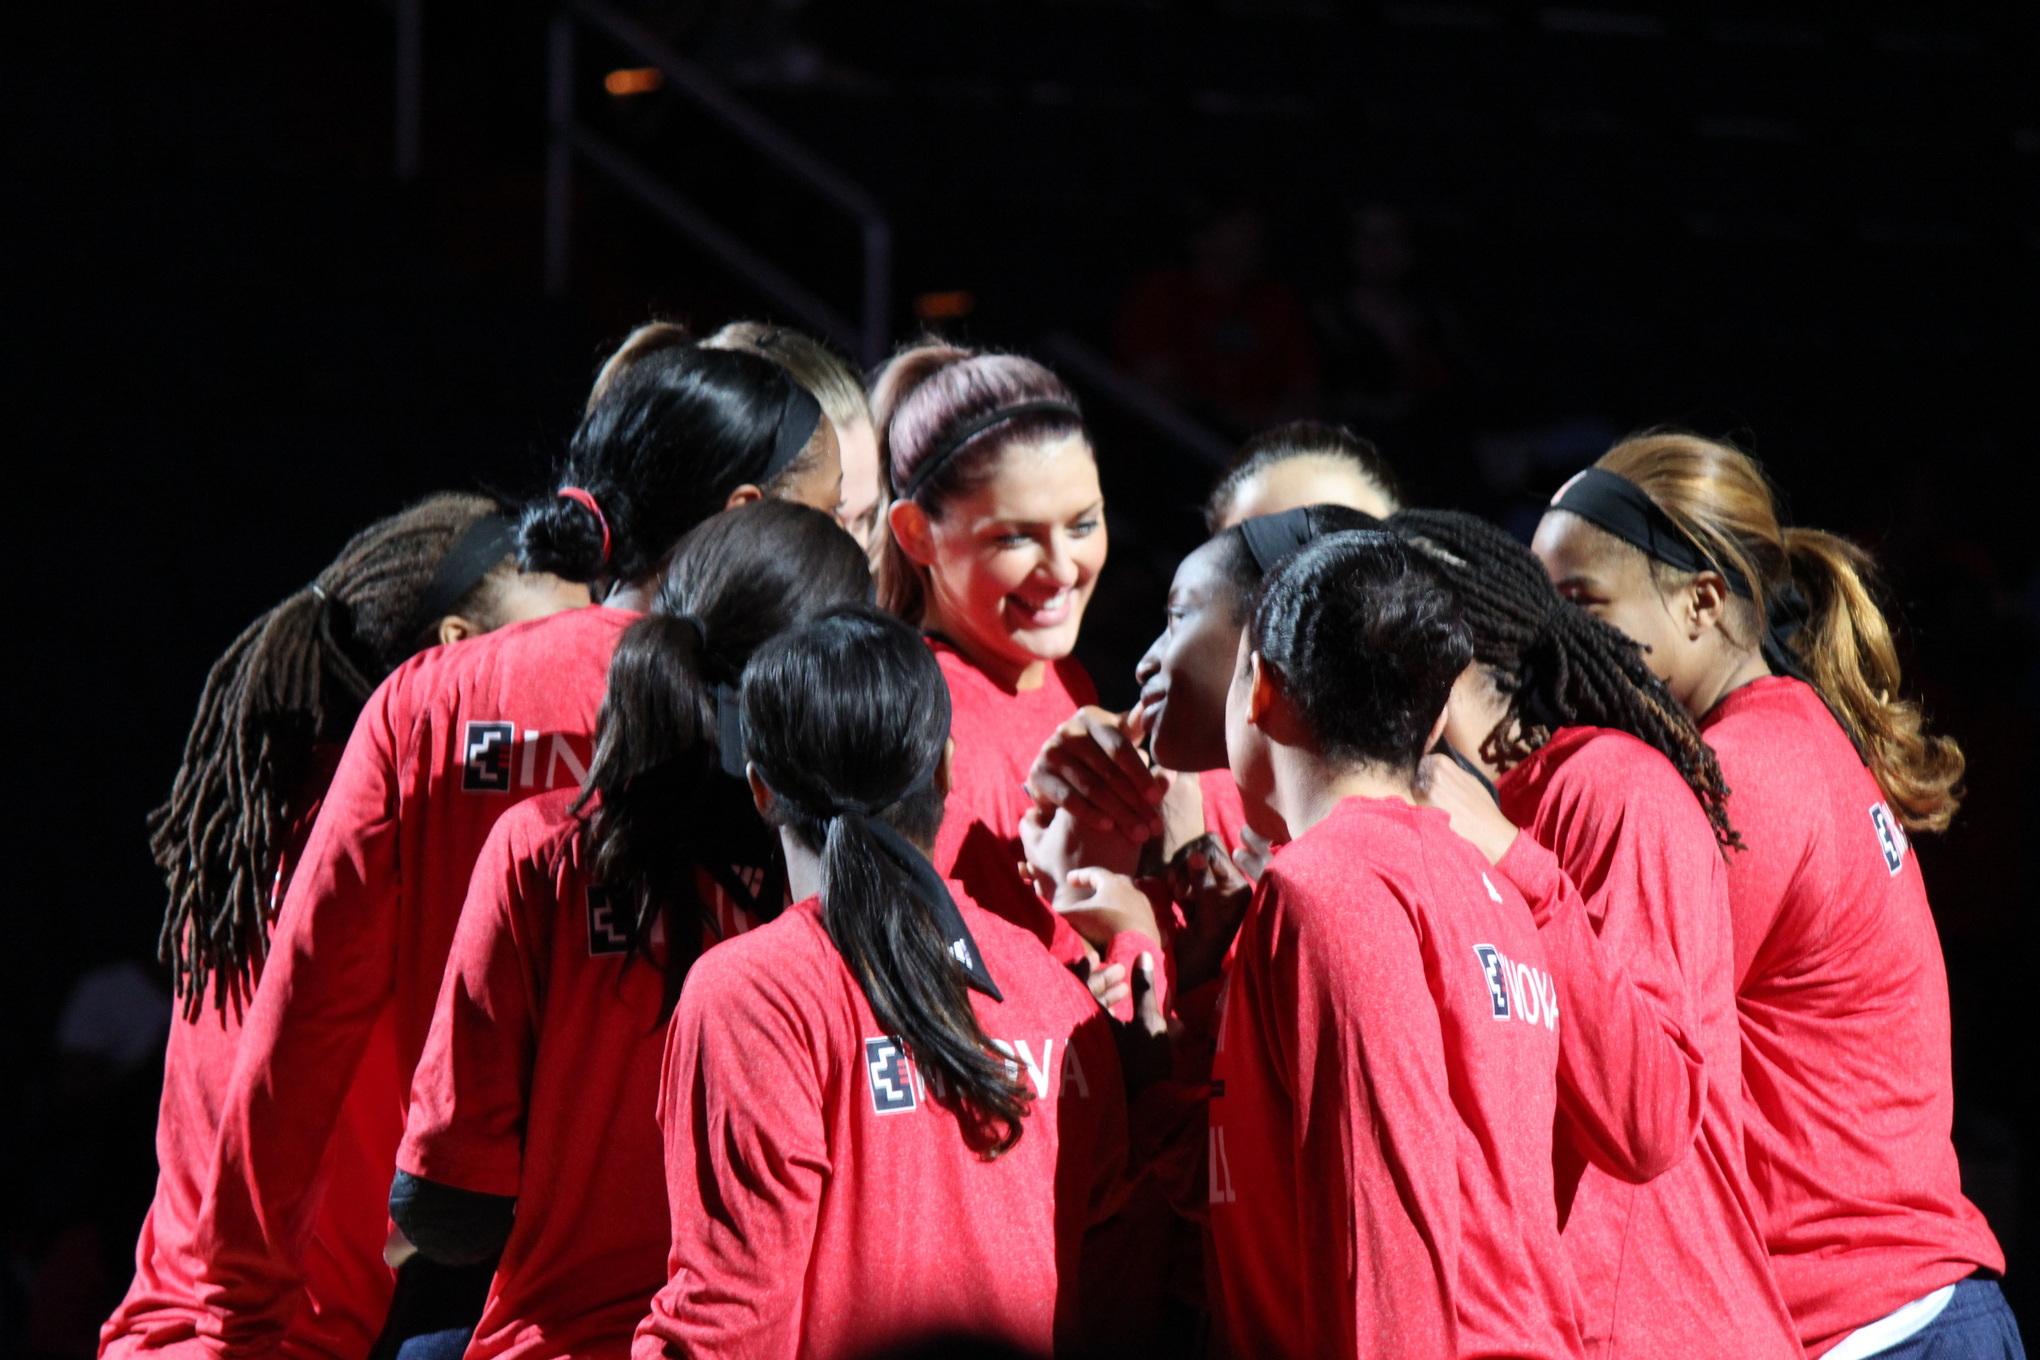 In our latest podcast, we talked a bit about the Washington Mystics and the progress their young roster has made this season.